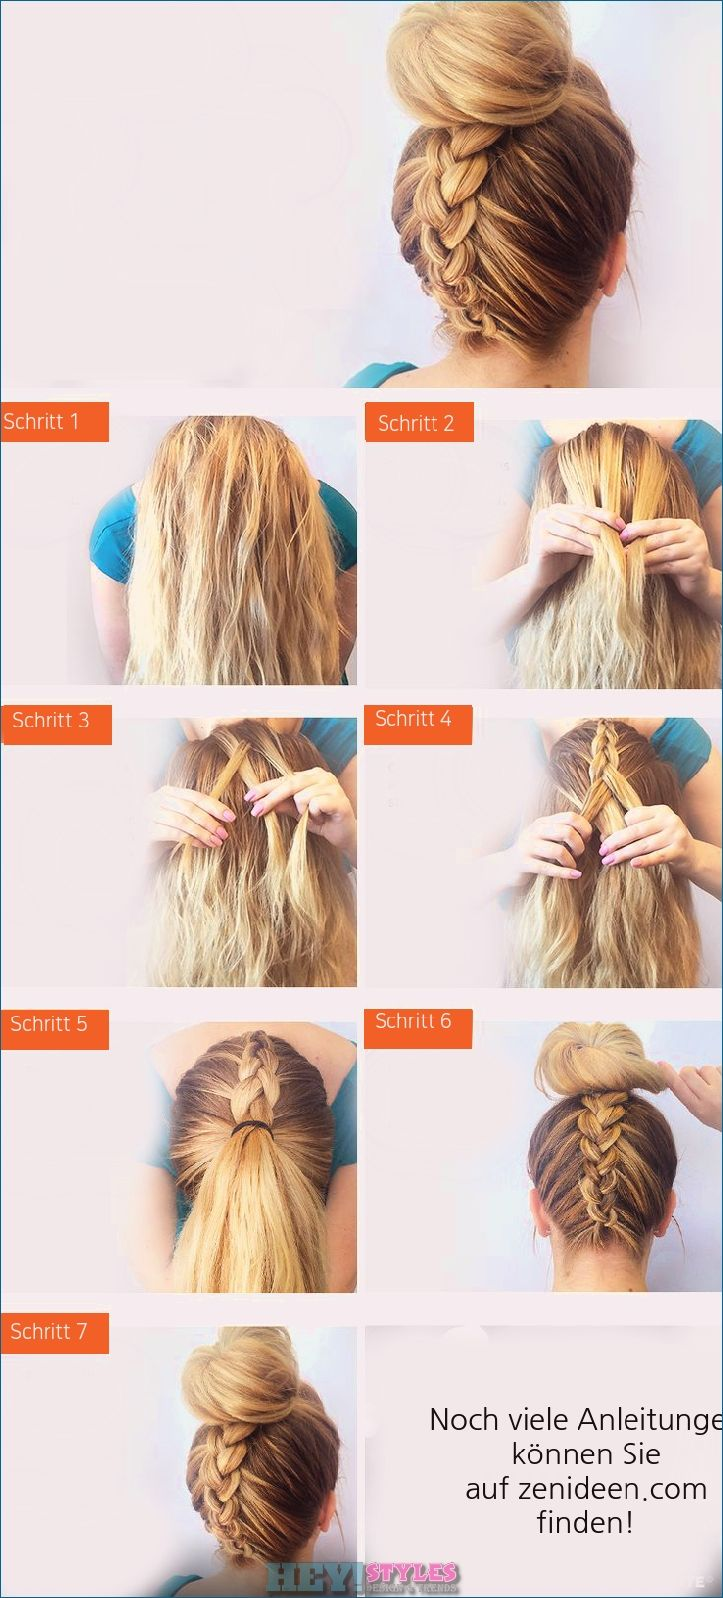 Braided Shoulder Length Hair 15 Easy To Use Instructions For Every Day Heystyles Hair Styles Long Hair Styles Hair Hacks